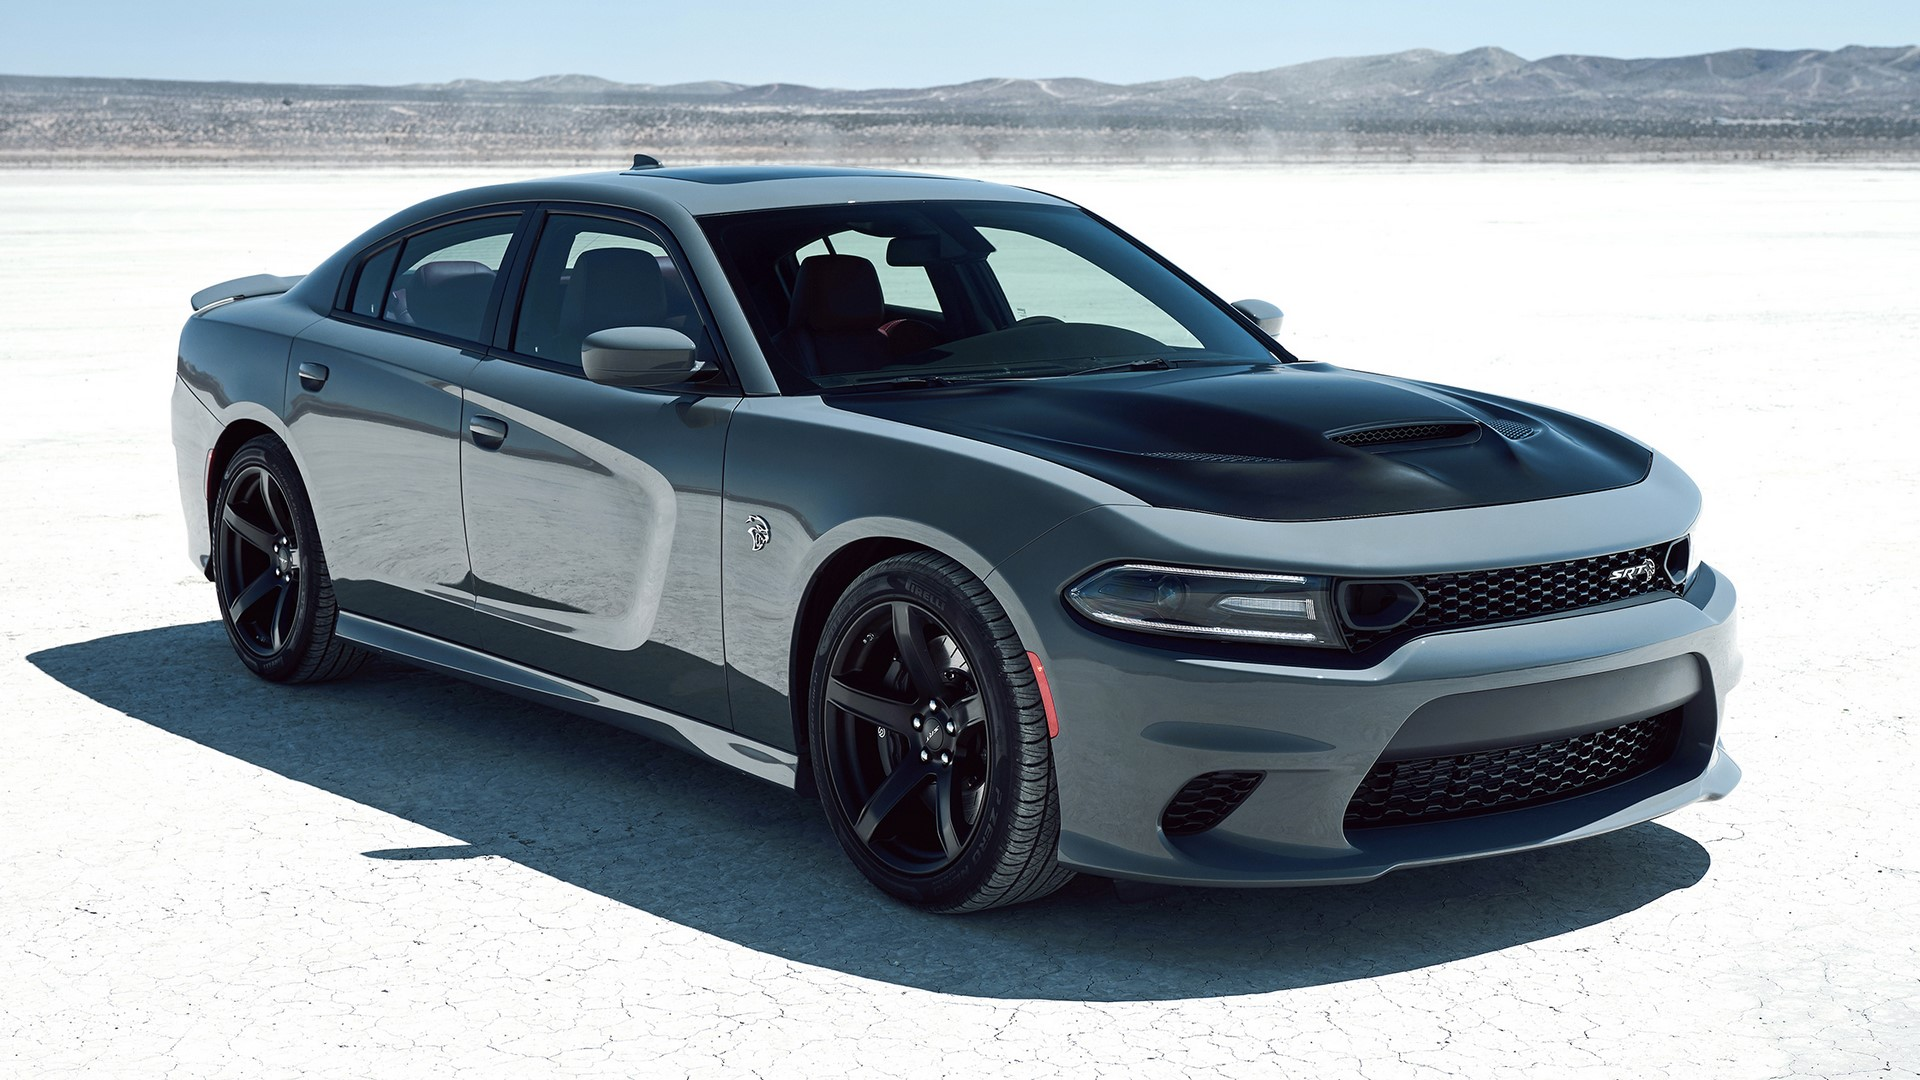 2019 Dodge Charger SRT Hellcat with newly available Satin Black painted hood